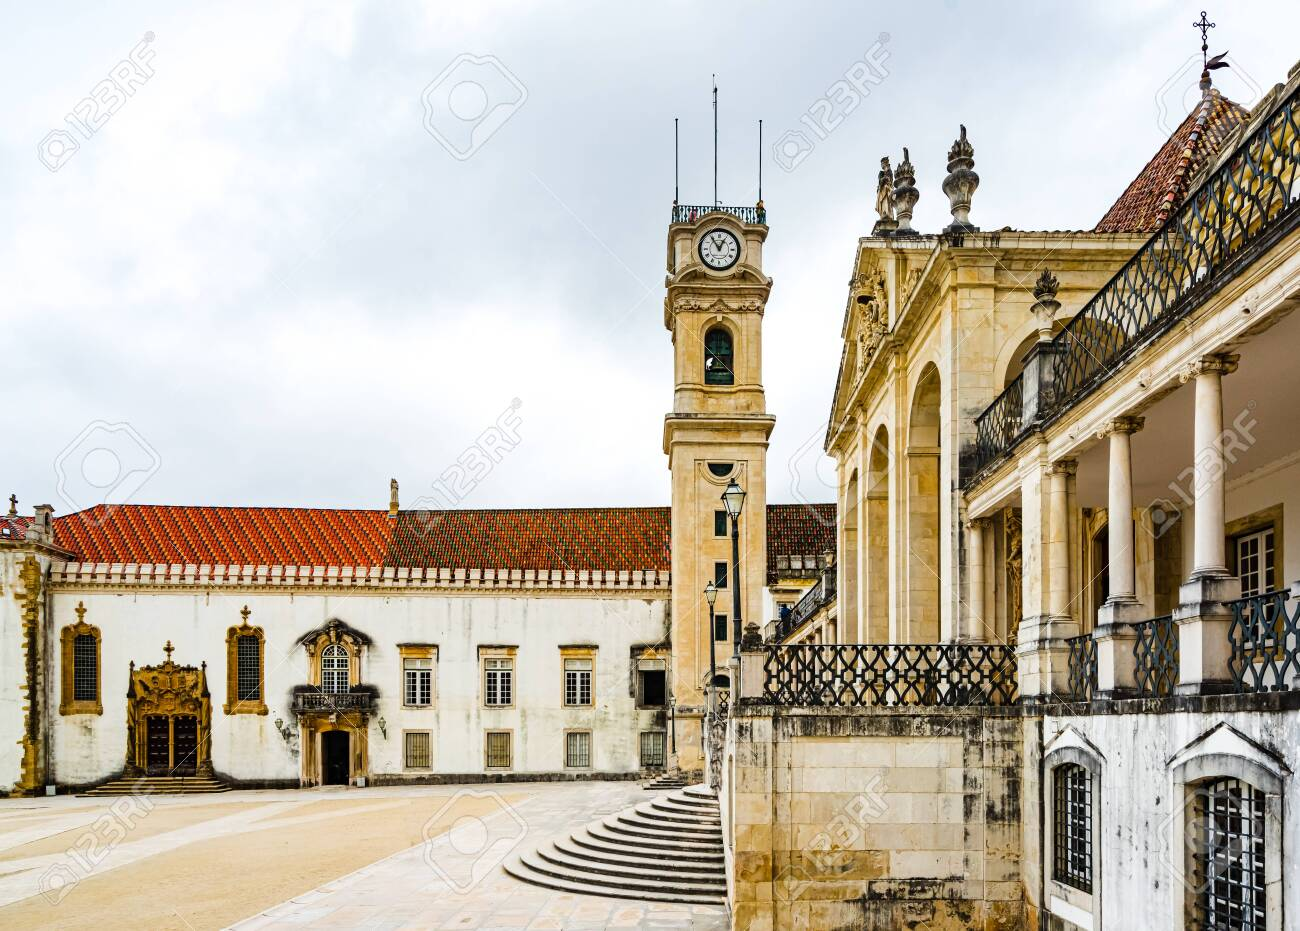 View on old buildings of the University of Coimbra, Portugal - 142709842